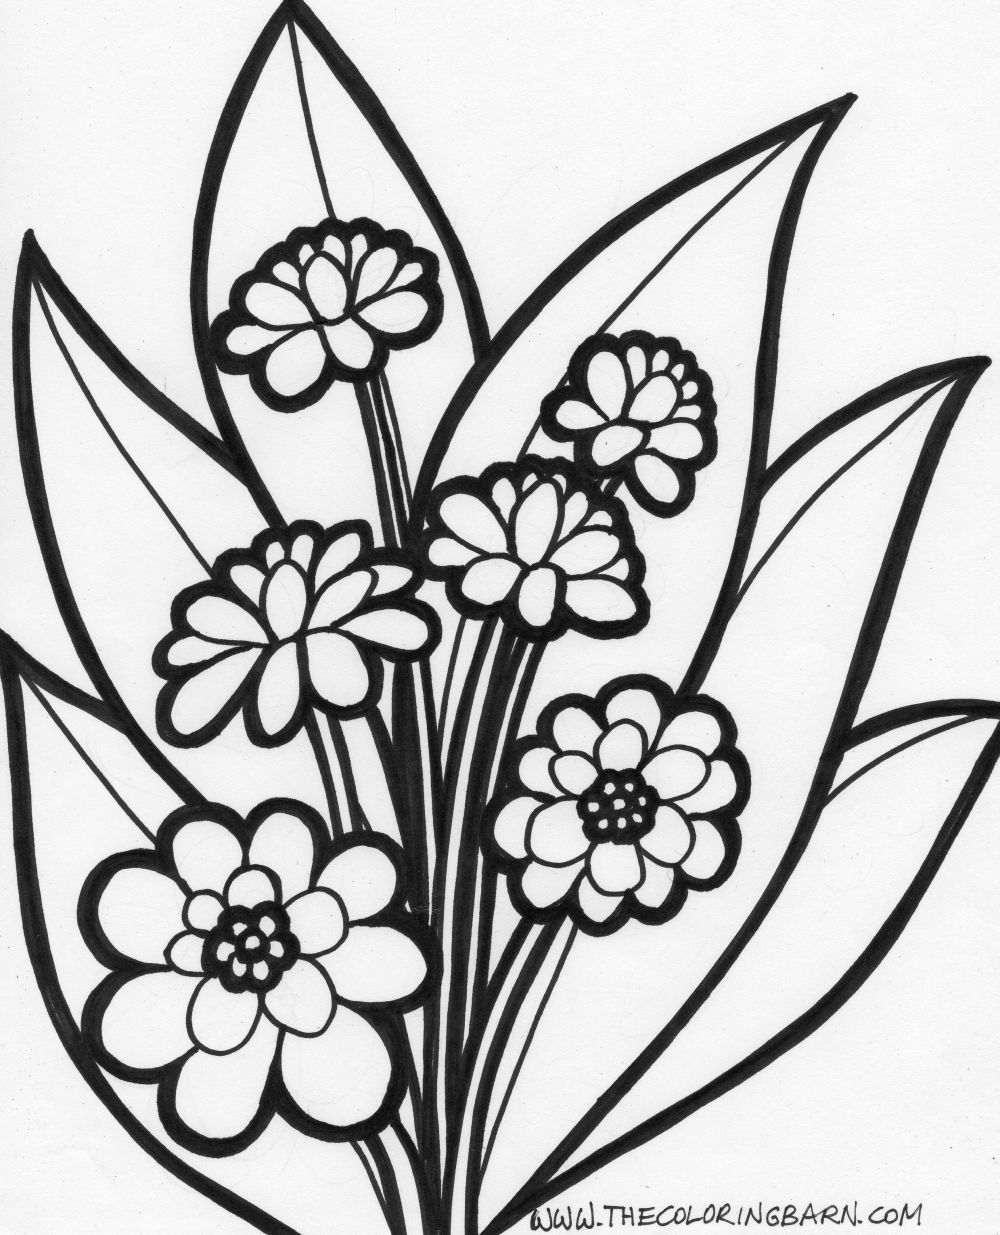 Flower Clip Art Coloring Pages at GetDrawings.com | Free for ...